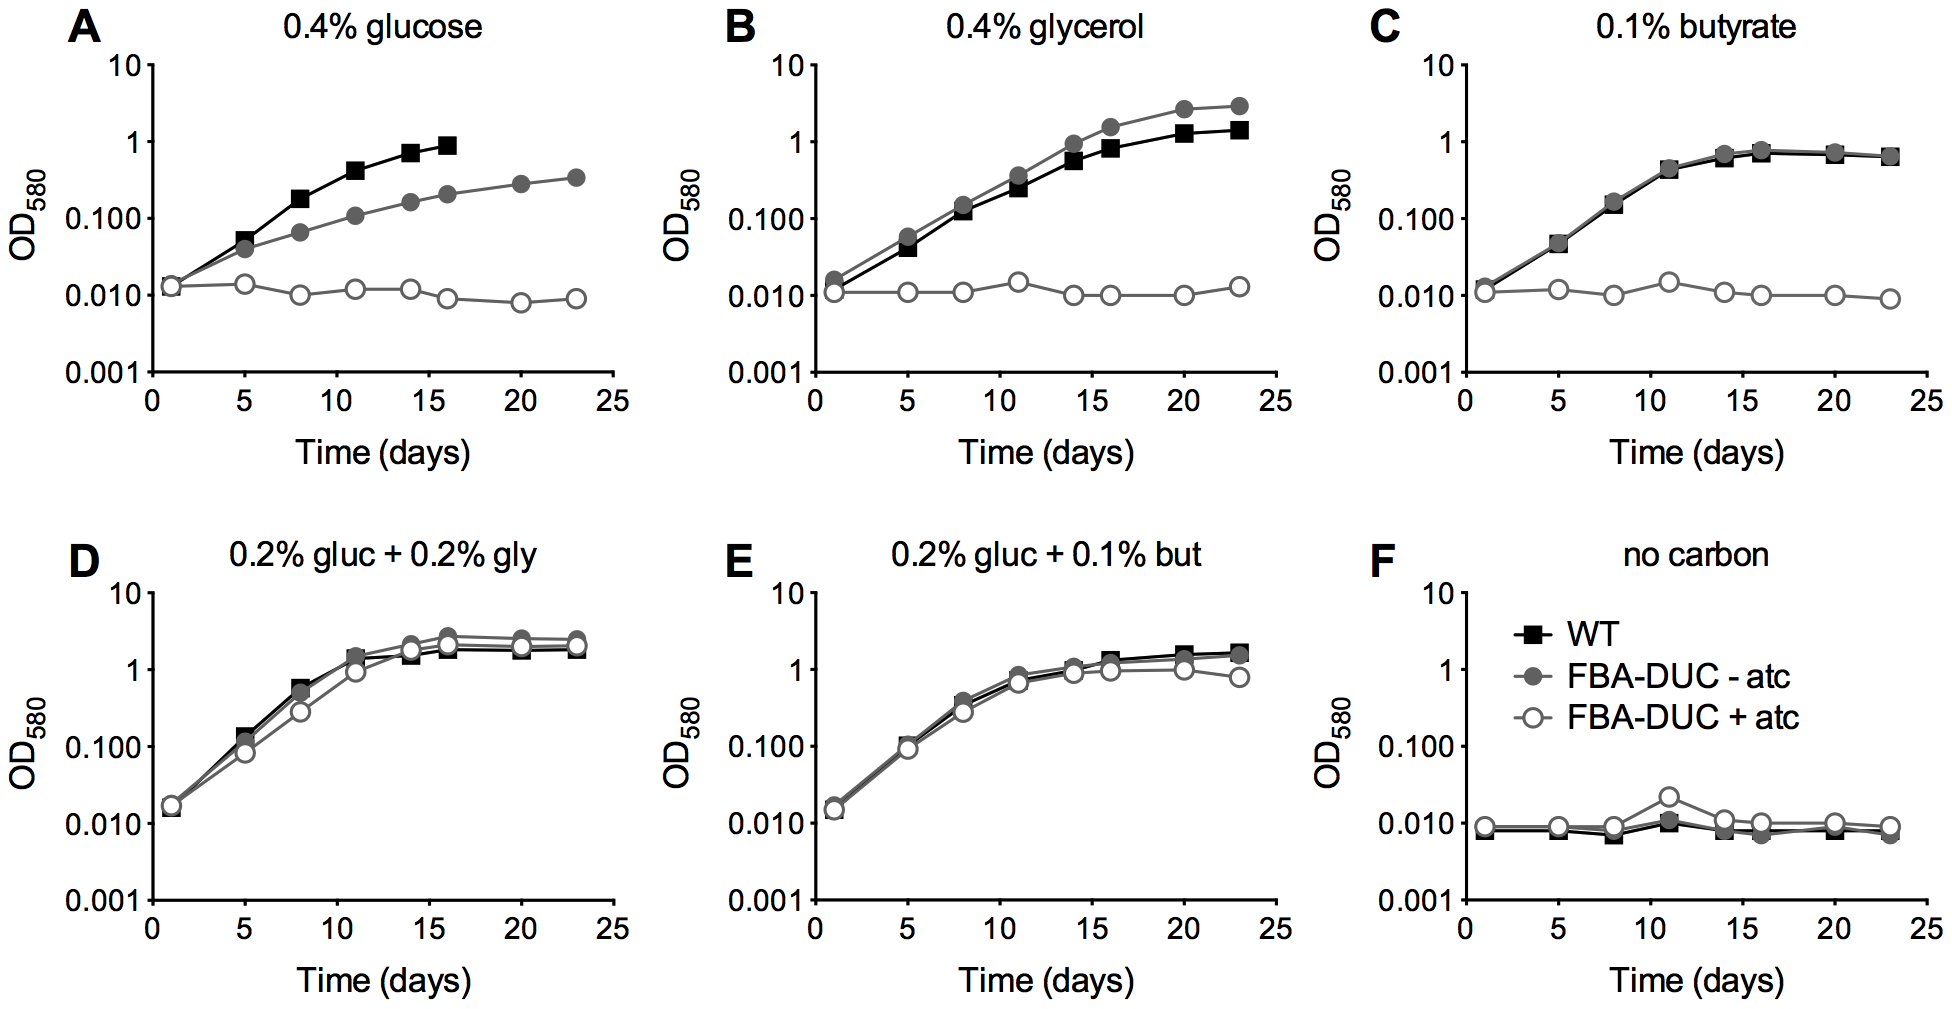 FBA depletion inhibits growth of <i>Mtb</i> in single carbon sources, but not in the presence of both a glycolytic and a gluconeogenic carbon source.